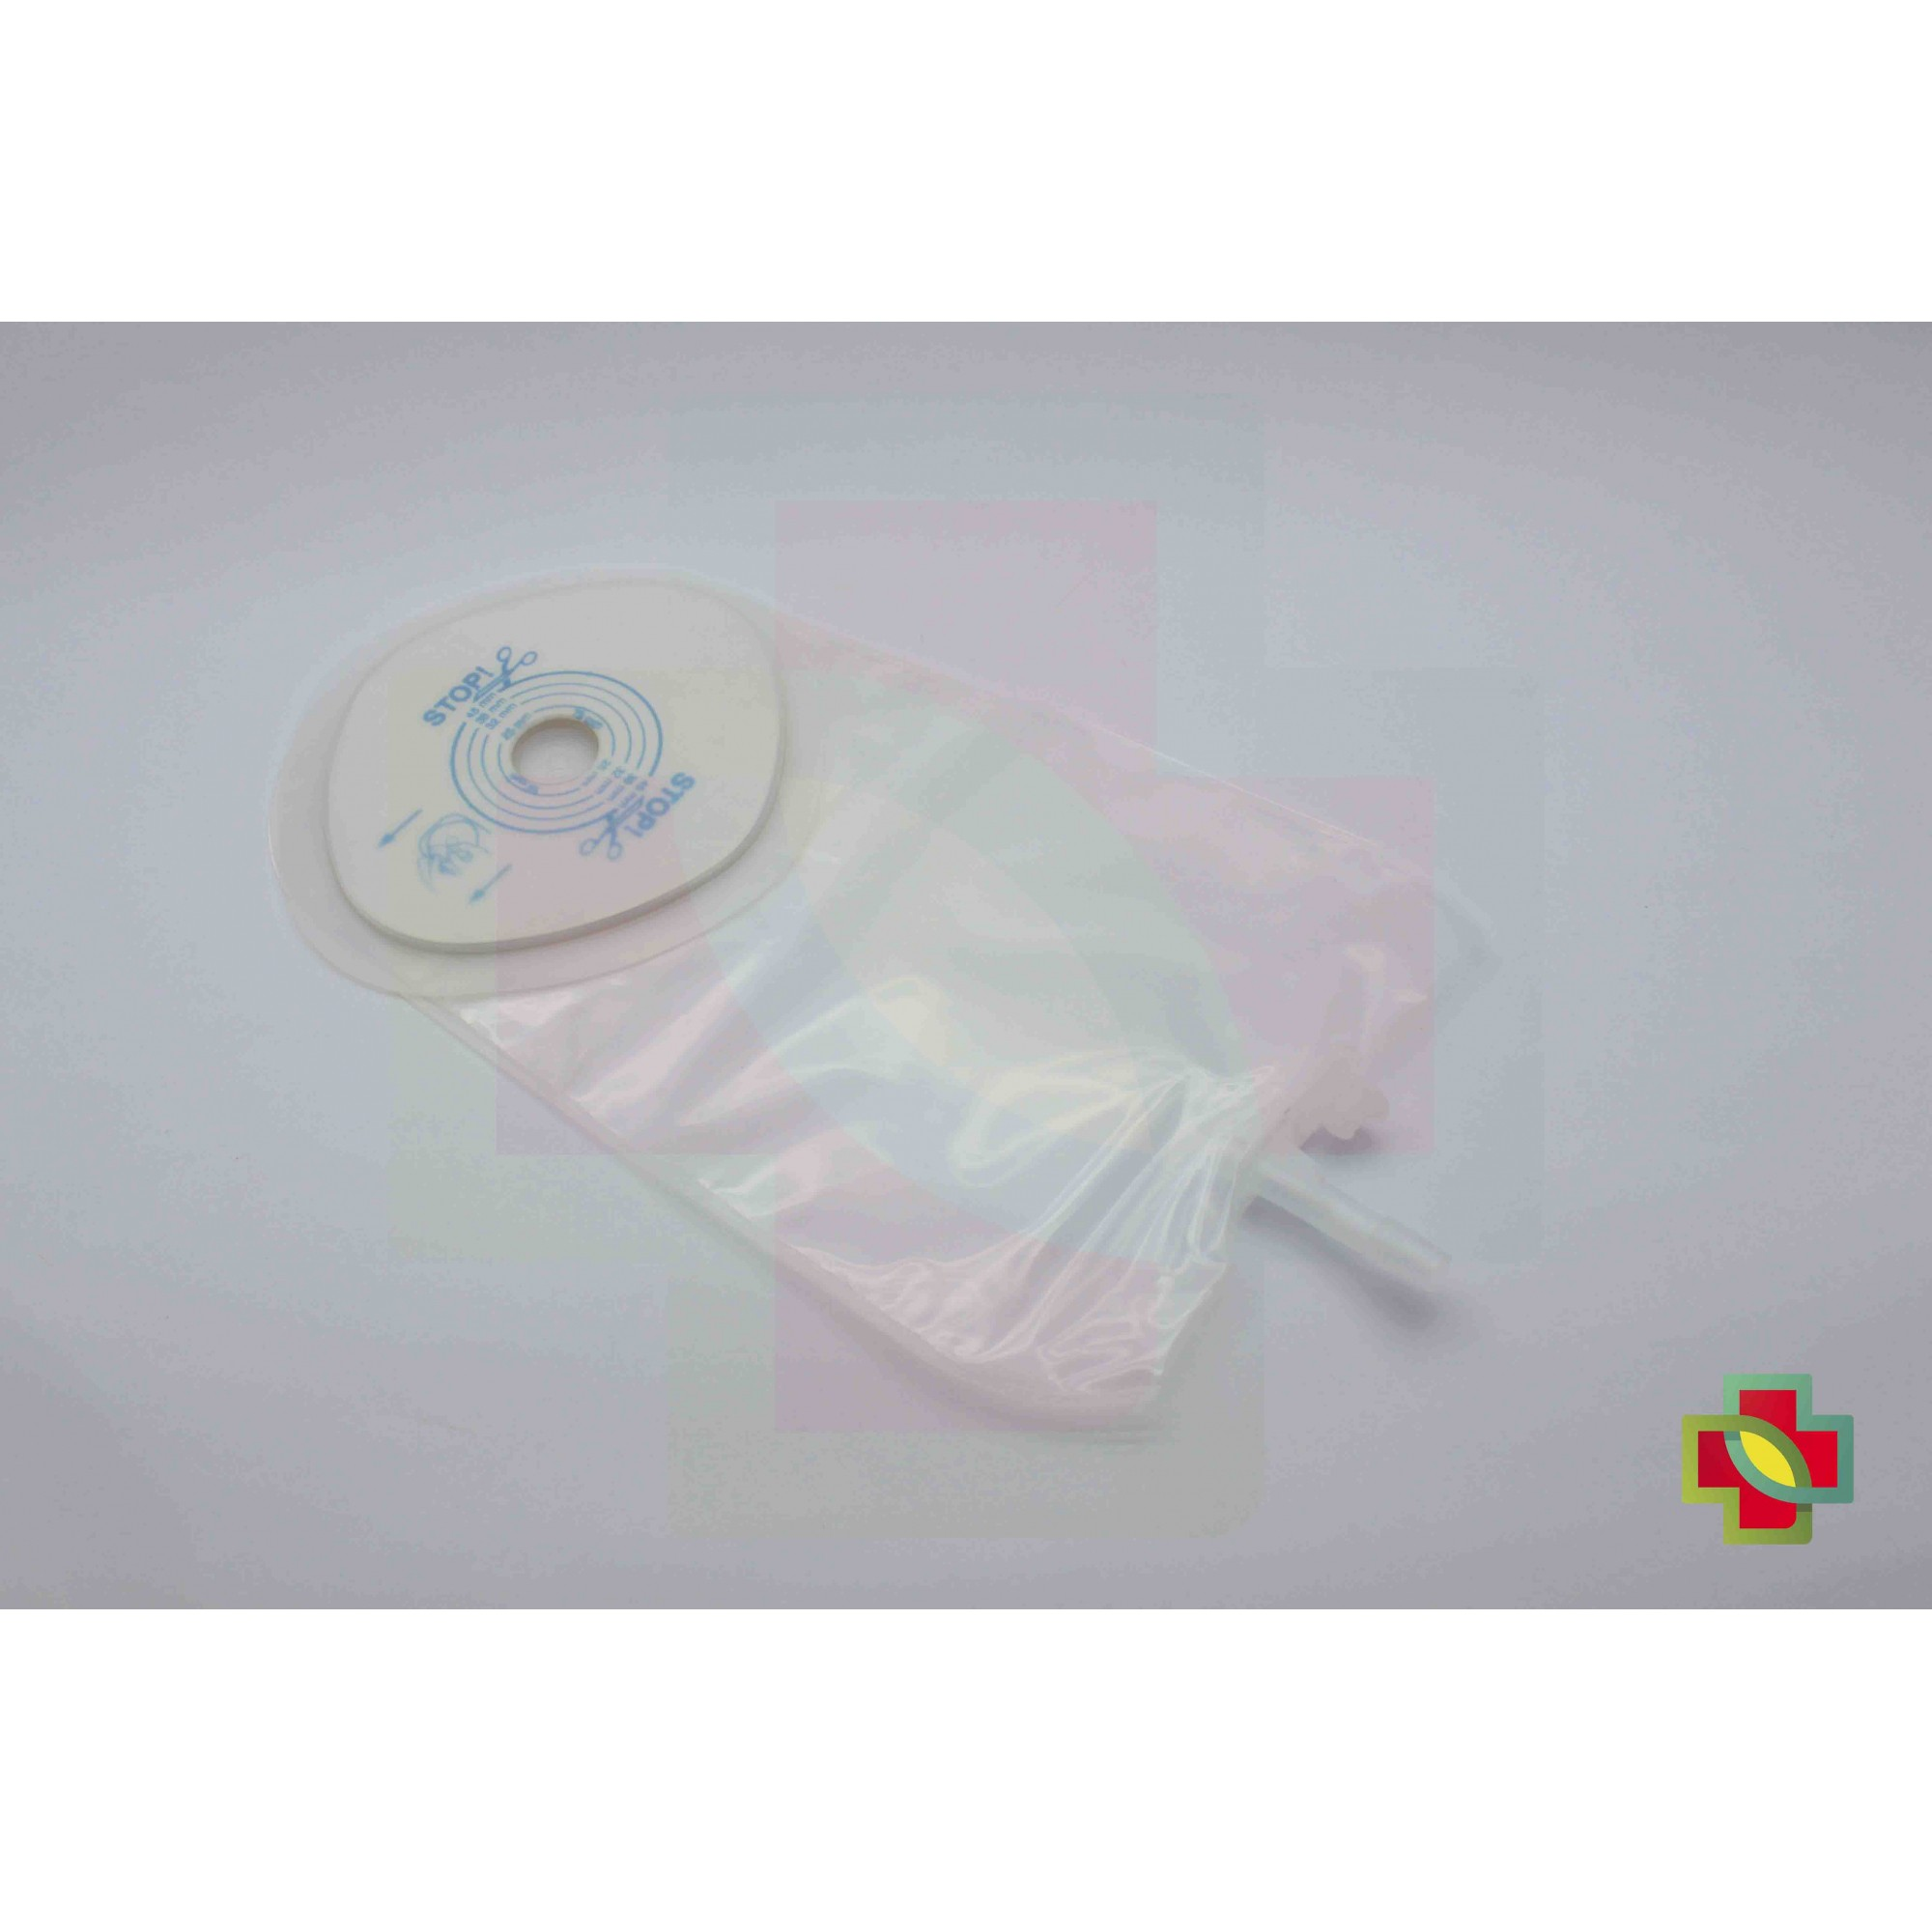 BOLSA DE UROSTOMIA ACTIVE-LIFE ANTI-REFLUXO 19-45 MM (C/10) 64927 - CONVATEC